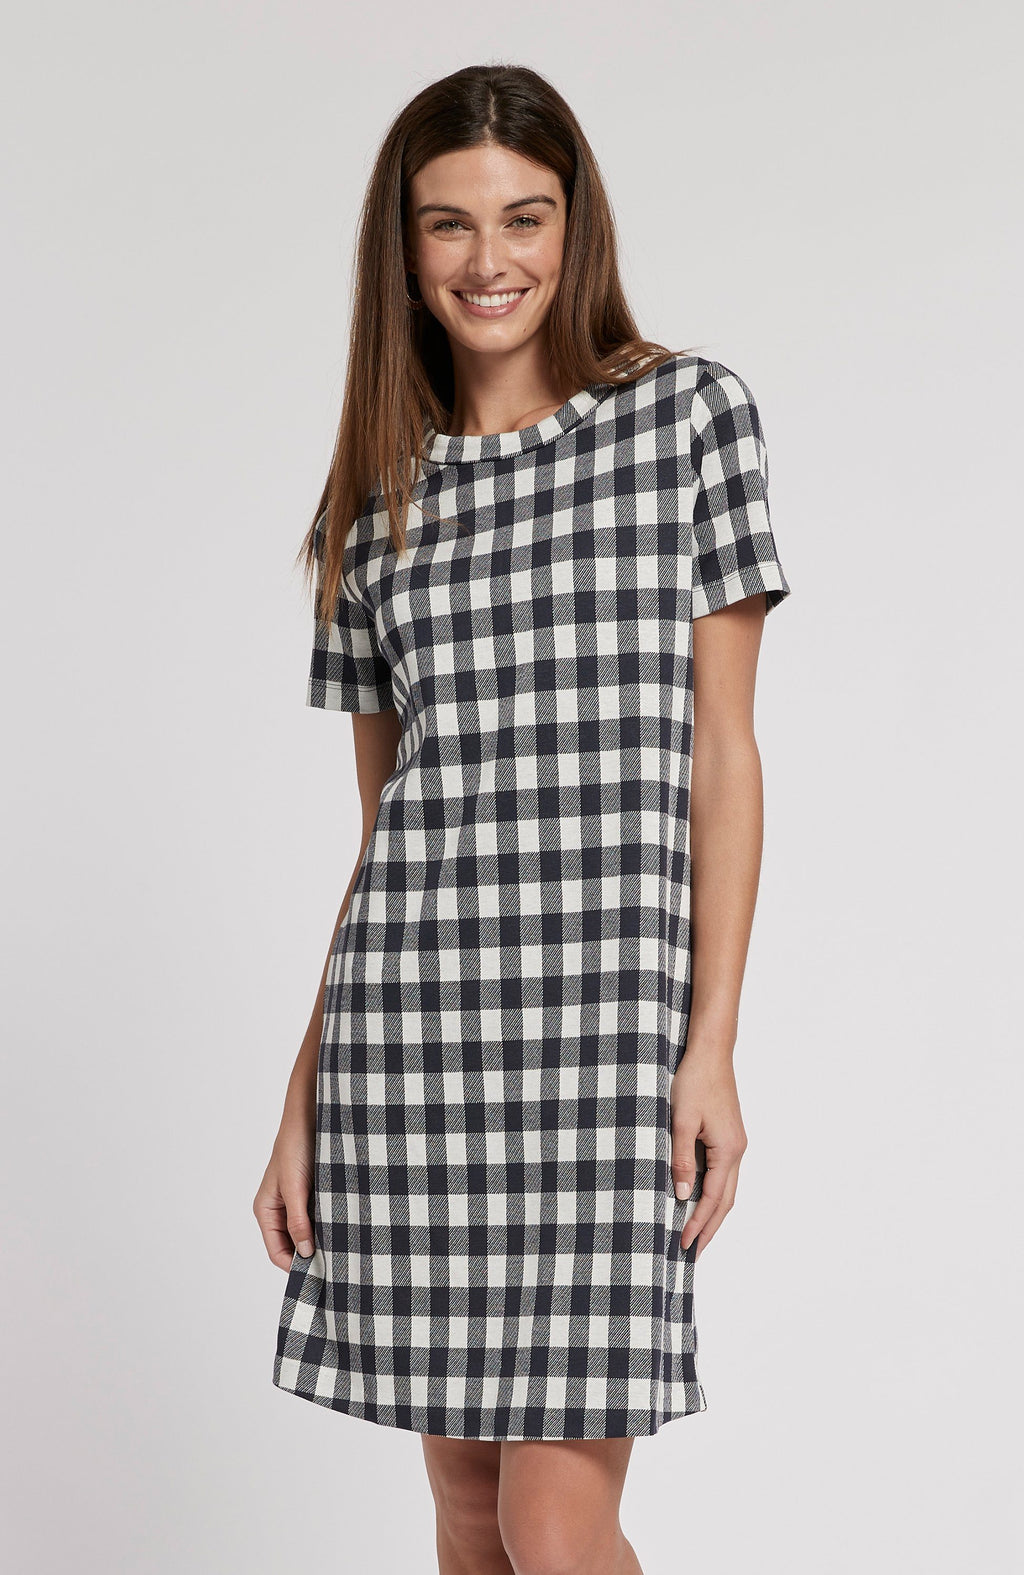 MORGAN JACQUARD DRESS - LGN TylerBoe XS LGN